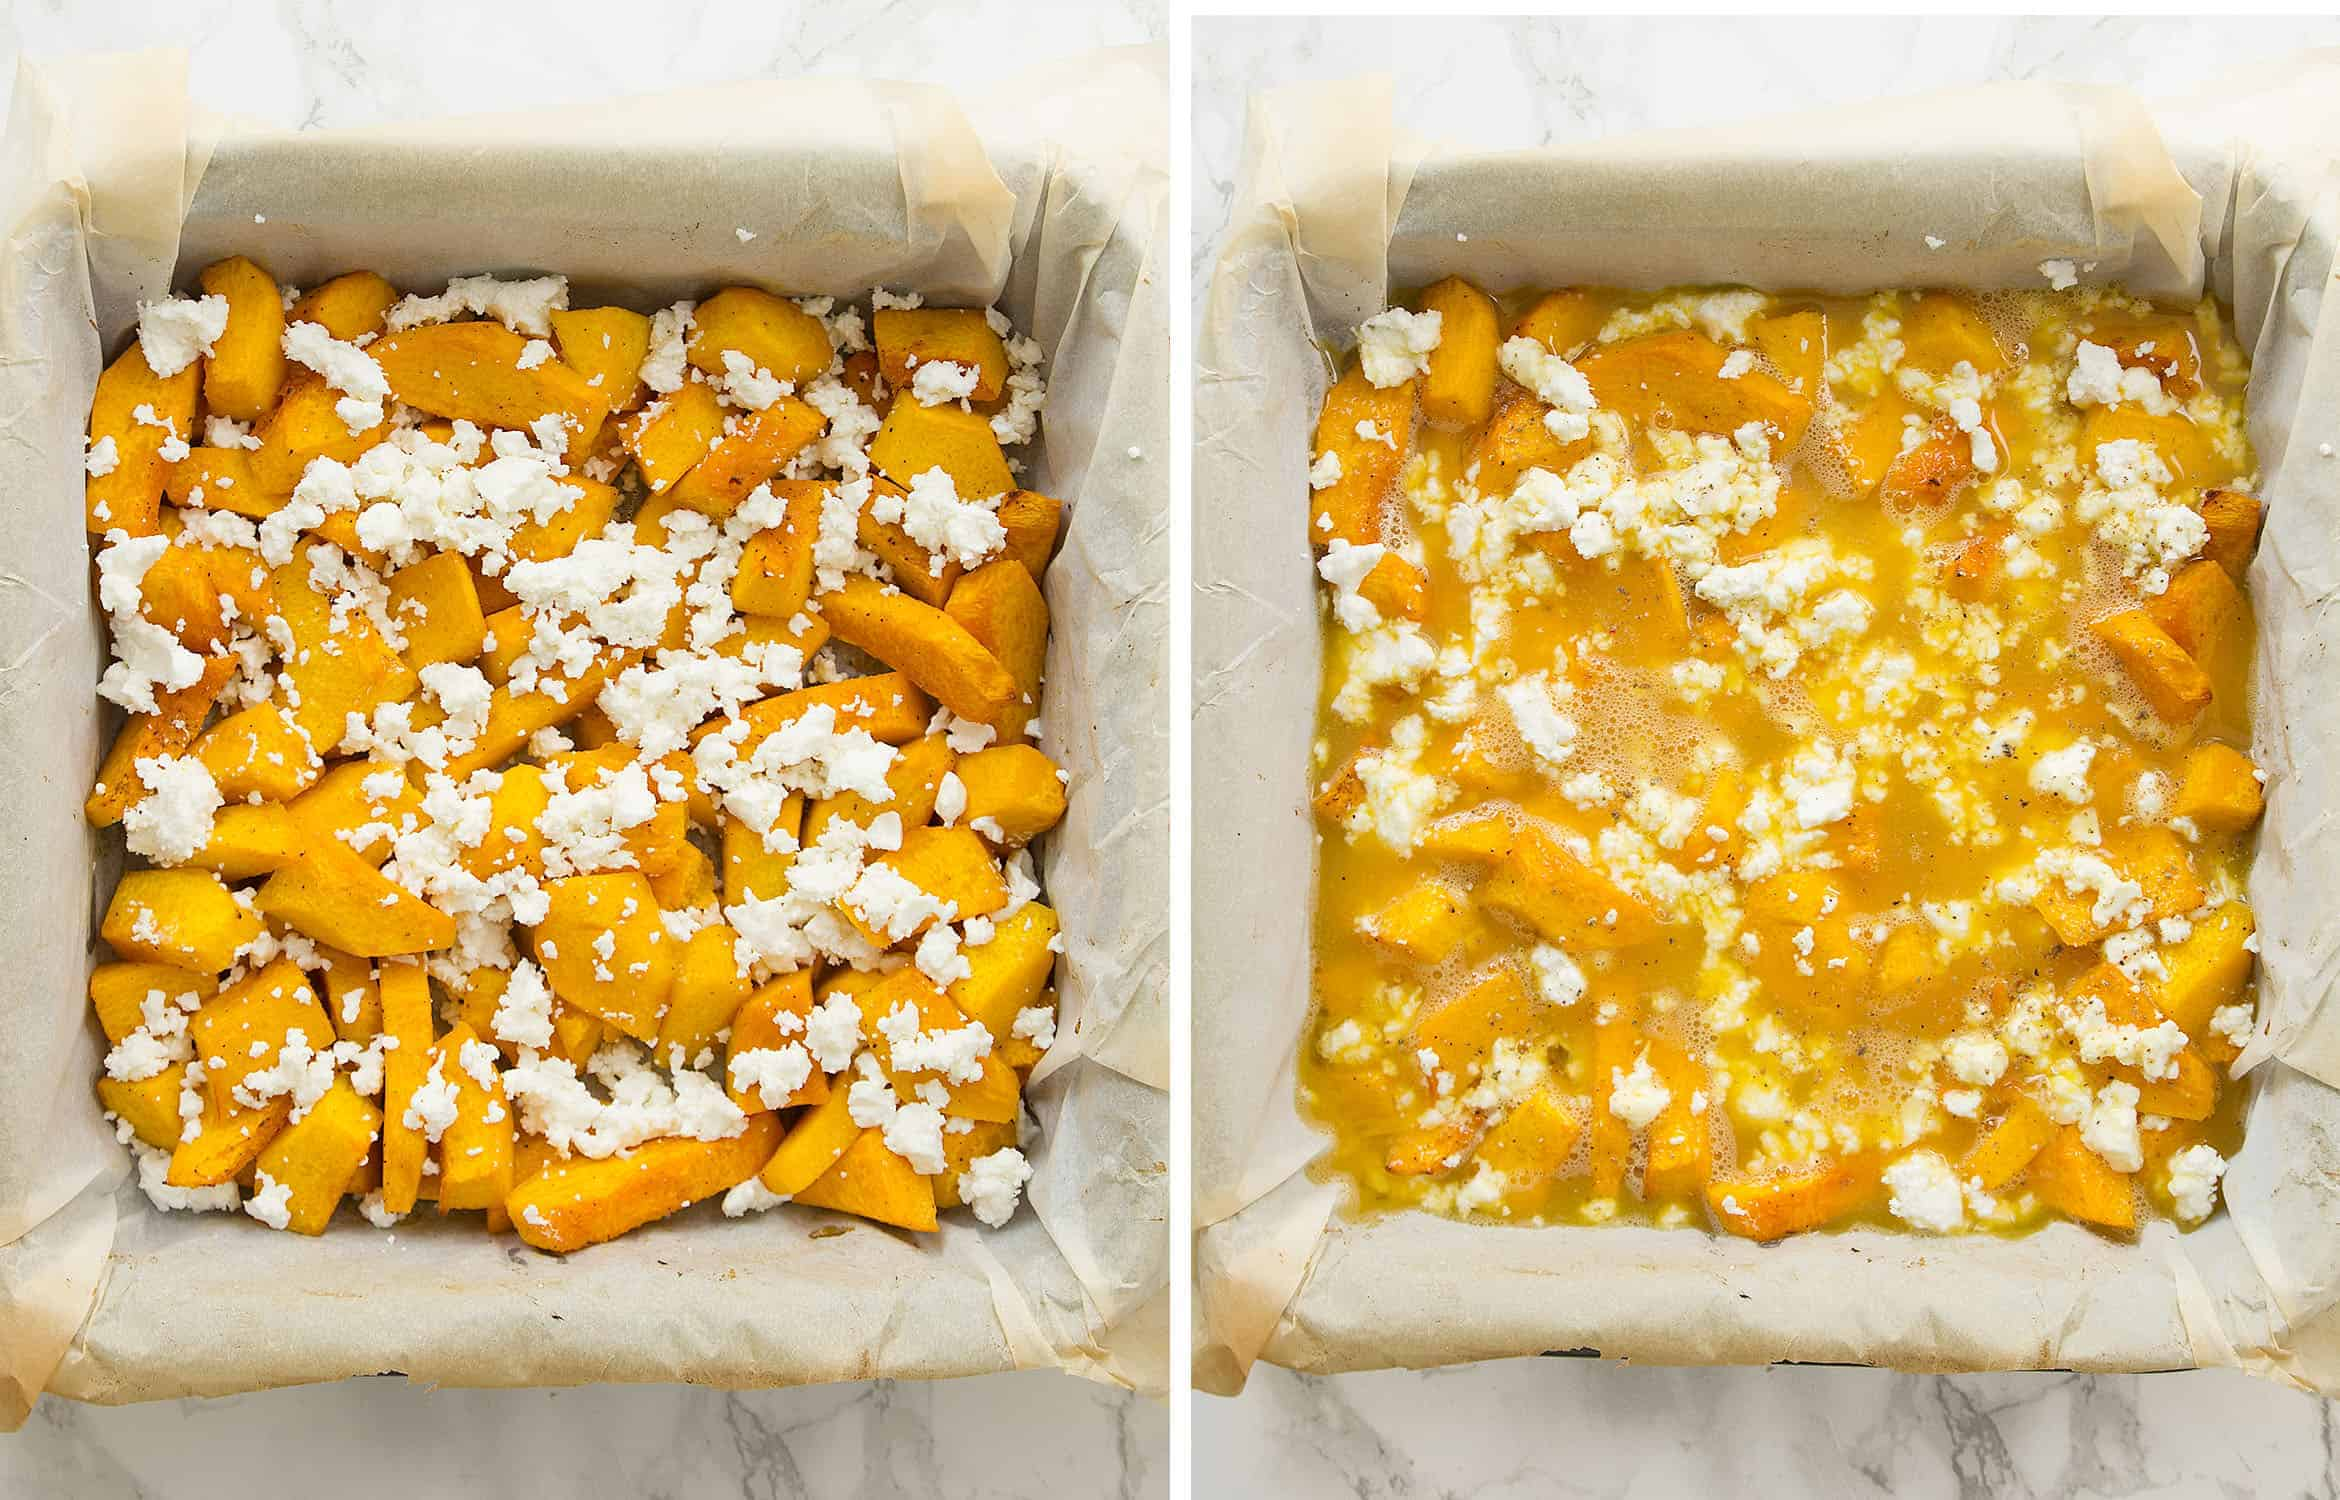 A squared baking pan full of roasted pumpkin sliced and feta.